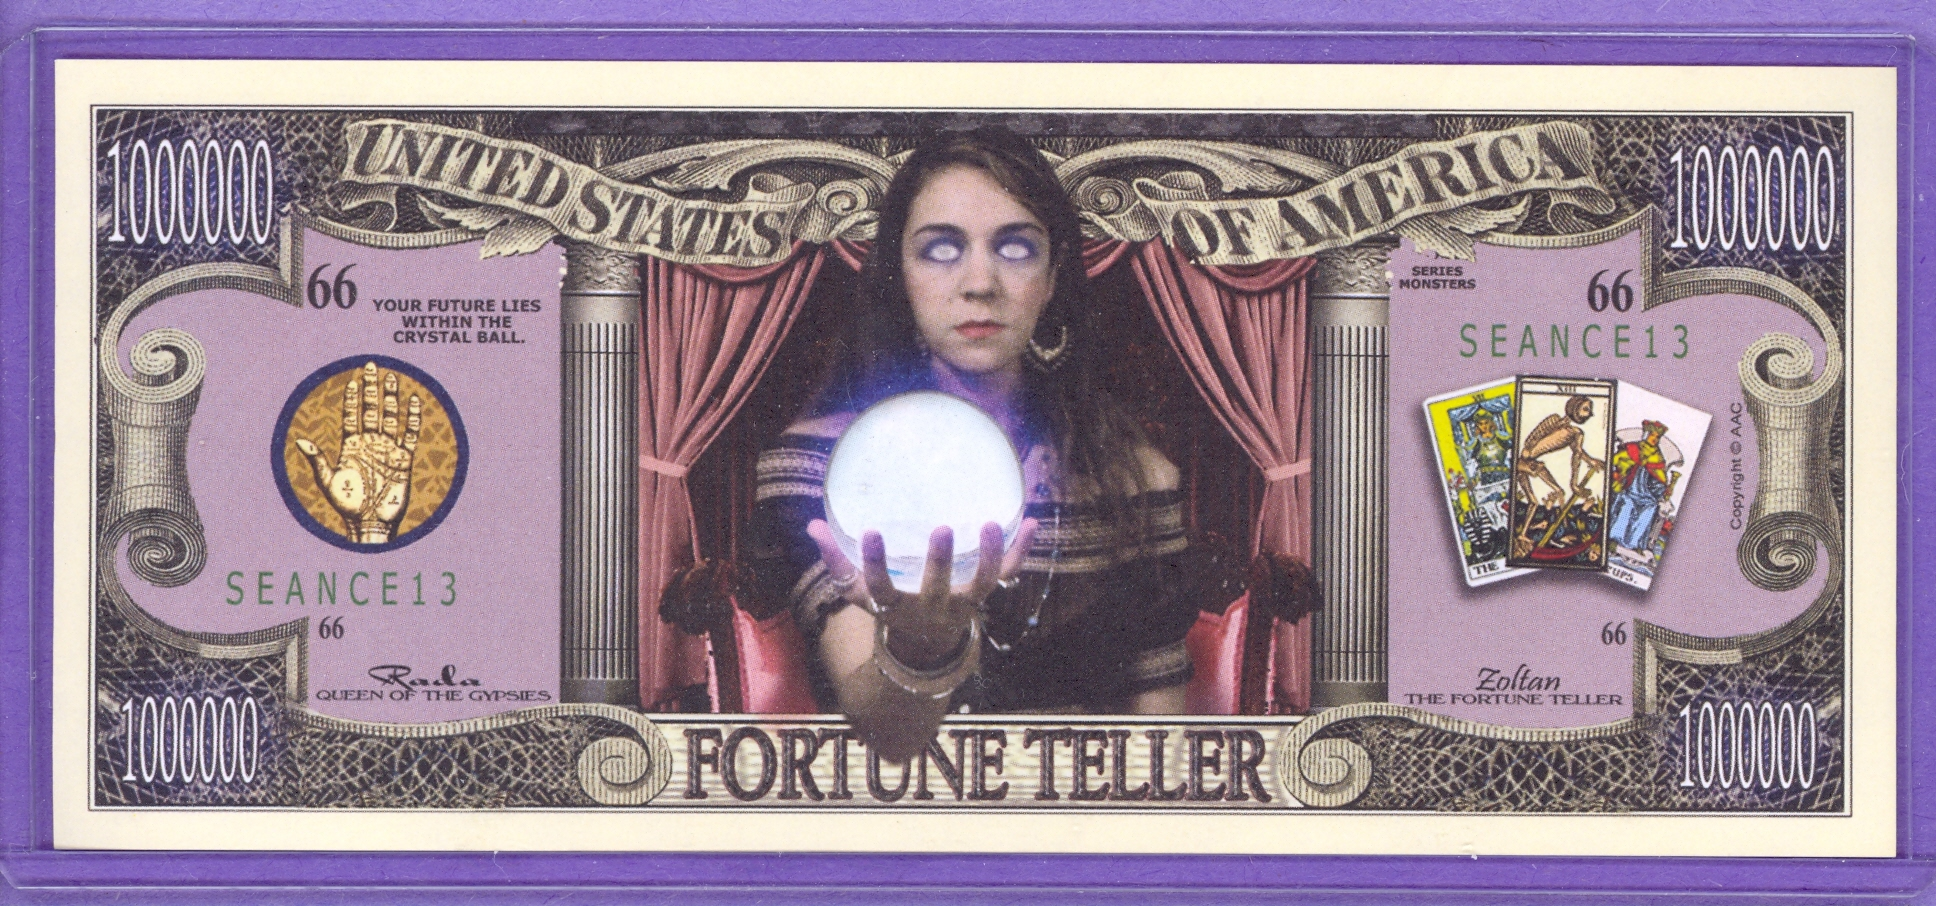 Fortune Teller $1,000,000 Novelty Note